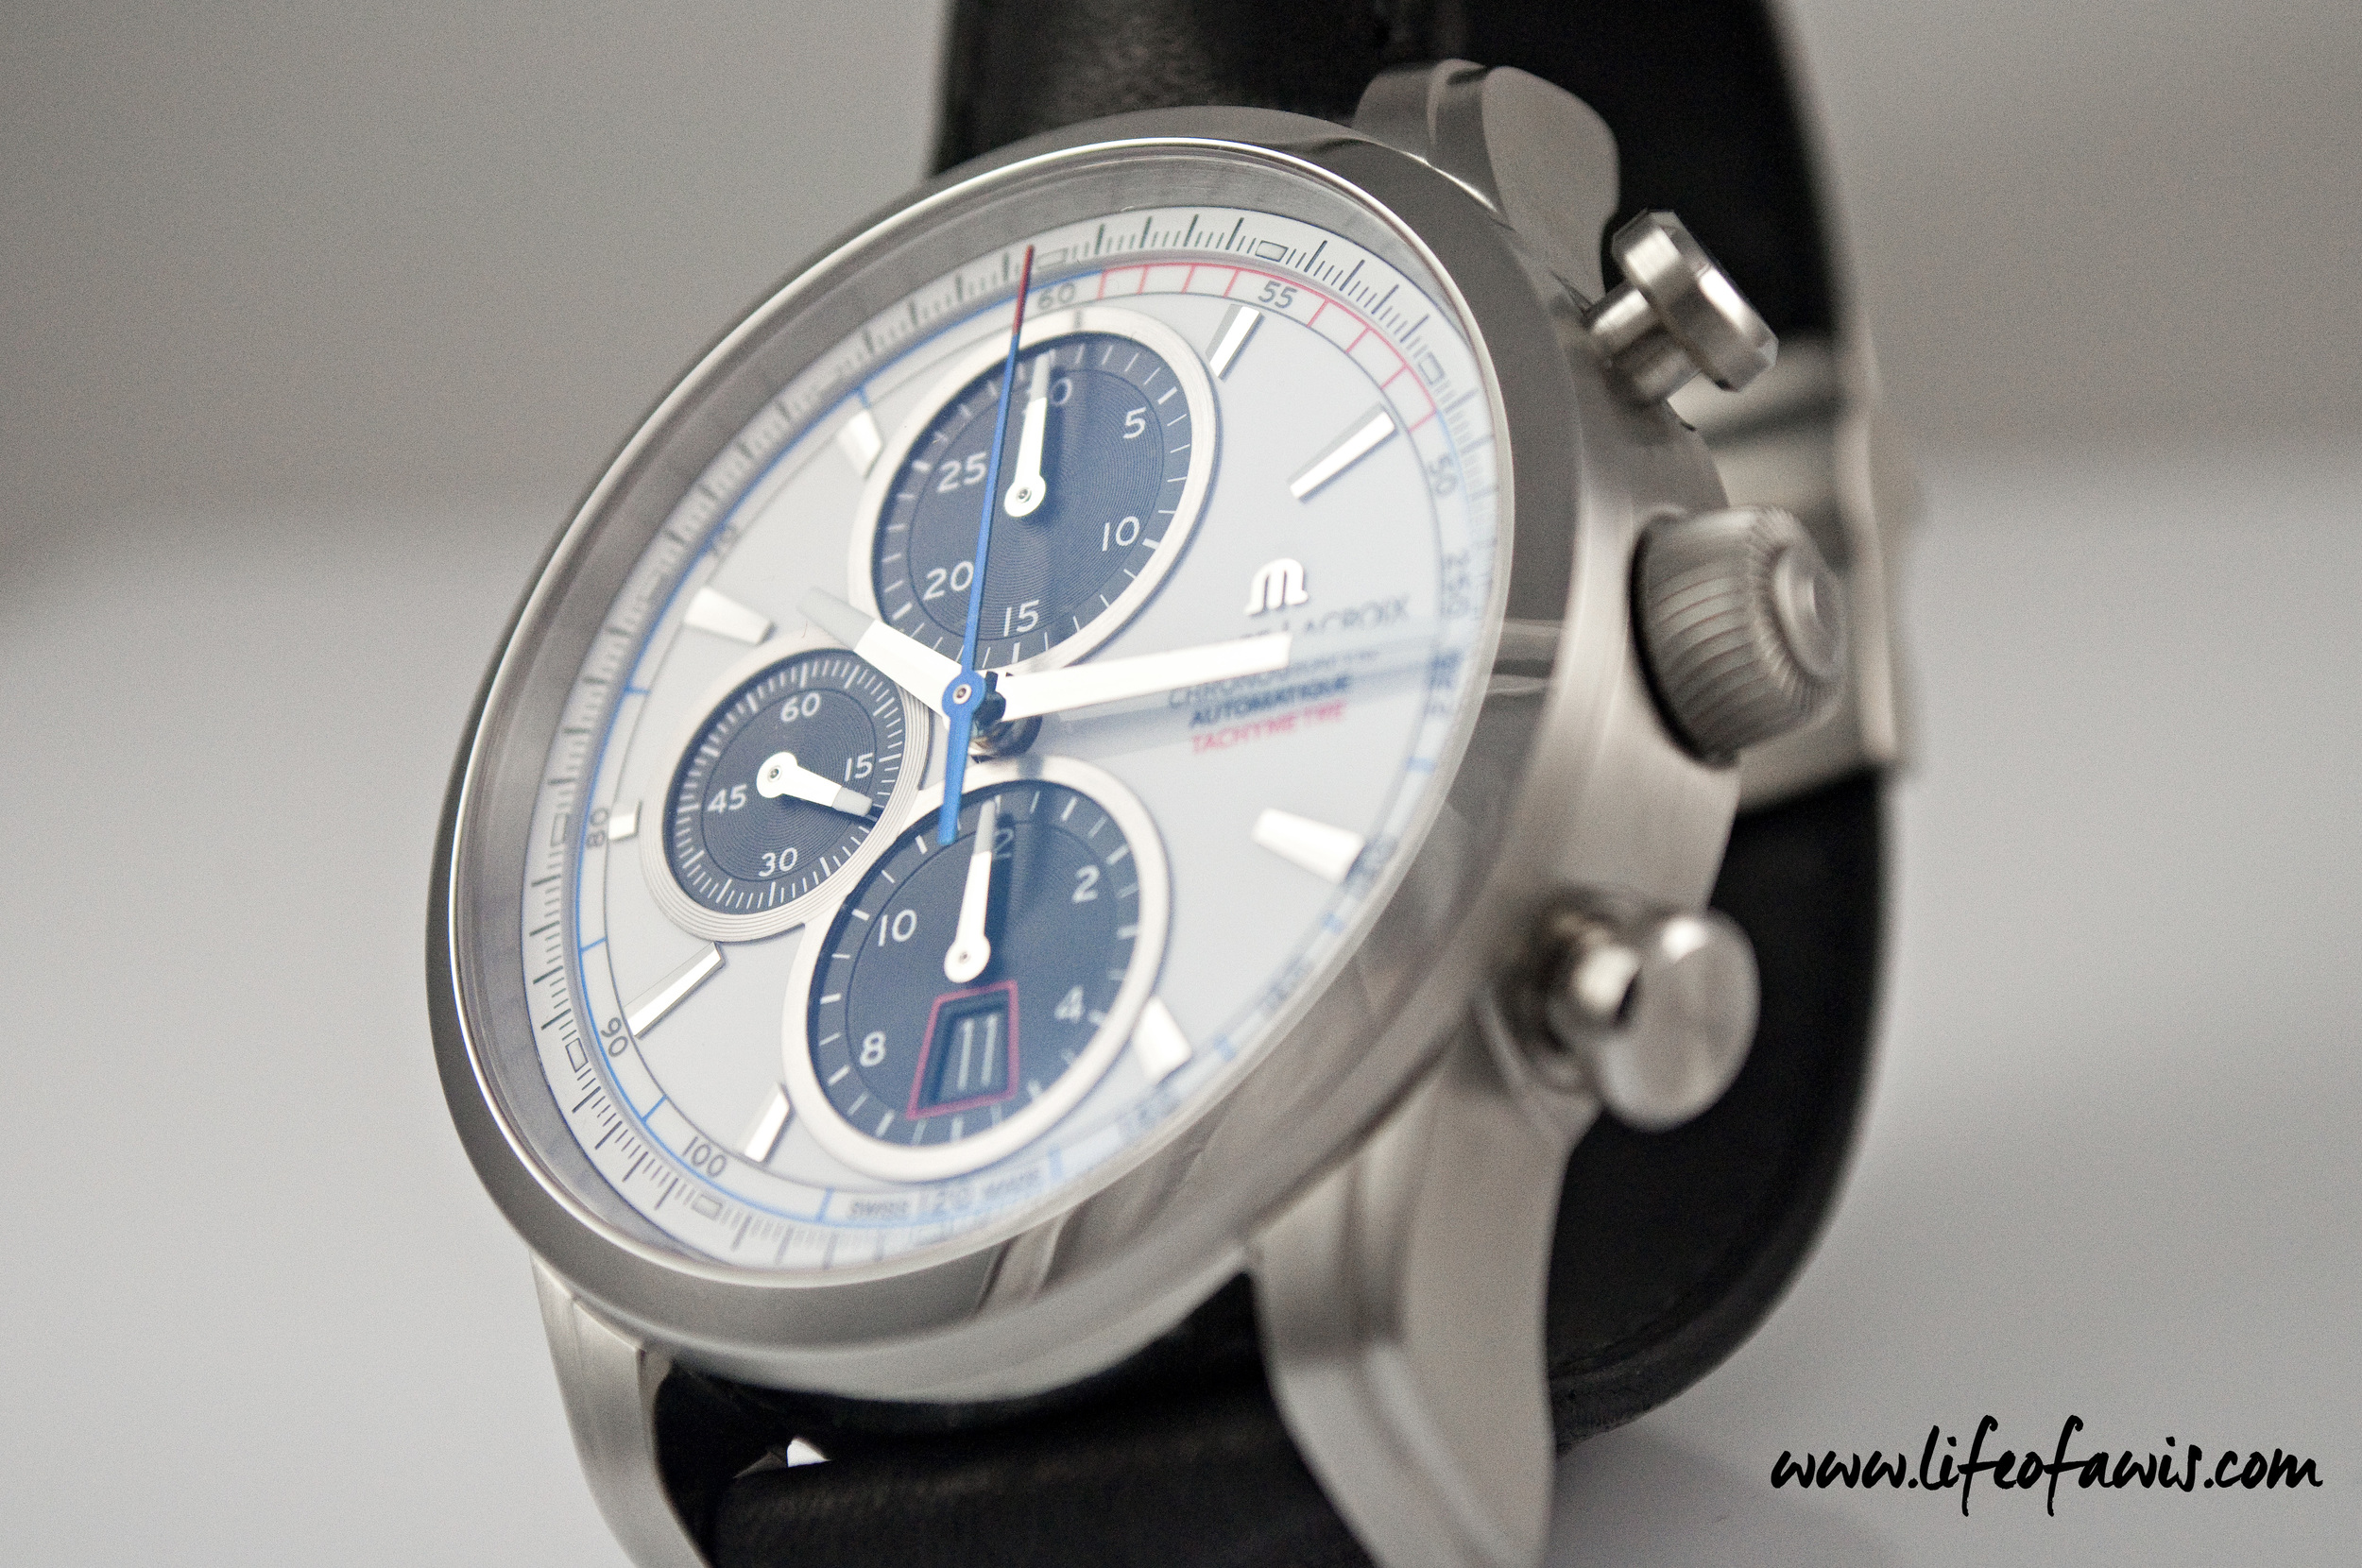 The second hand of the chronometer is deep blue with a red tip.